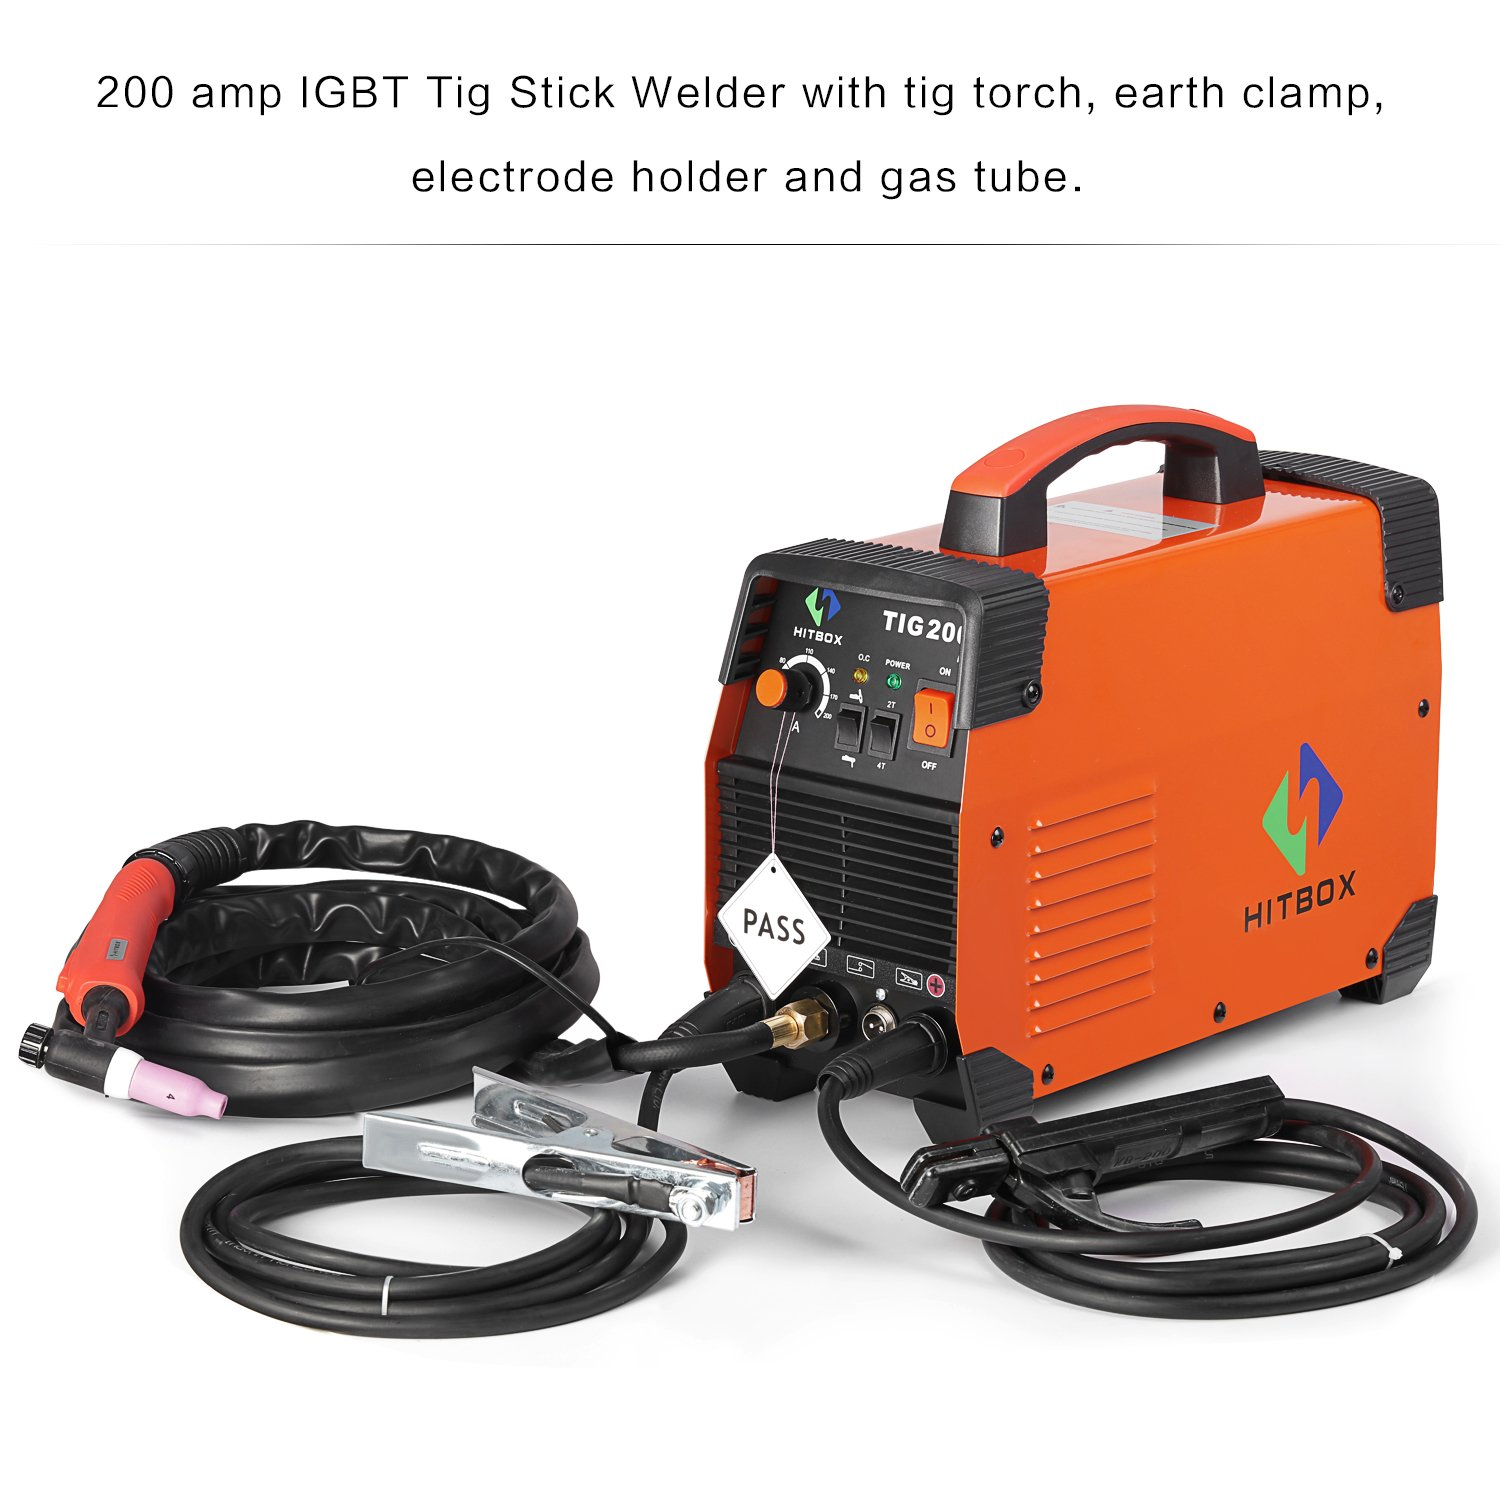 200 Amp Portable Tig Welding Machine High Frequency 220v Mma Lincoln Sa Parts Breakdown With Stick Igbt Inverter Welder